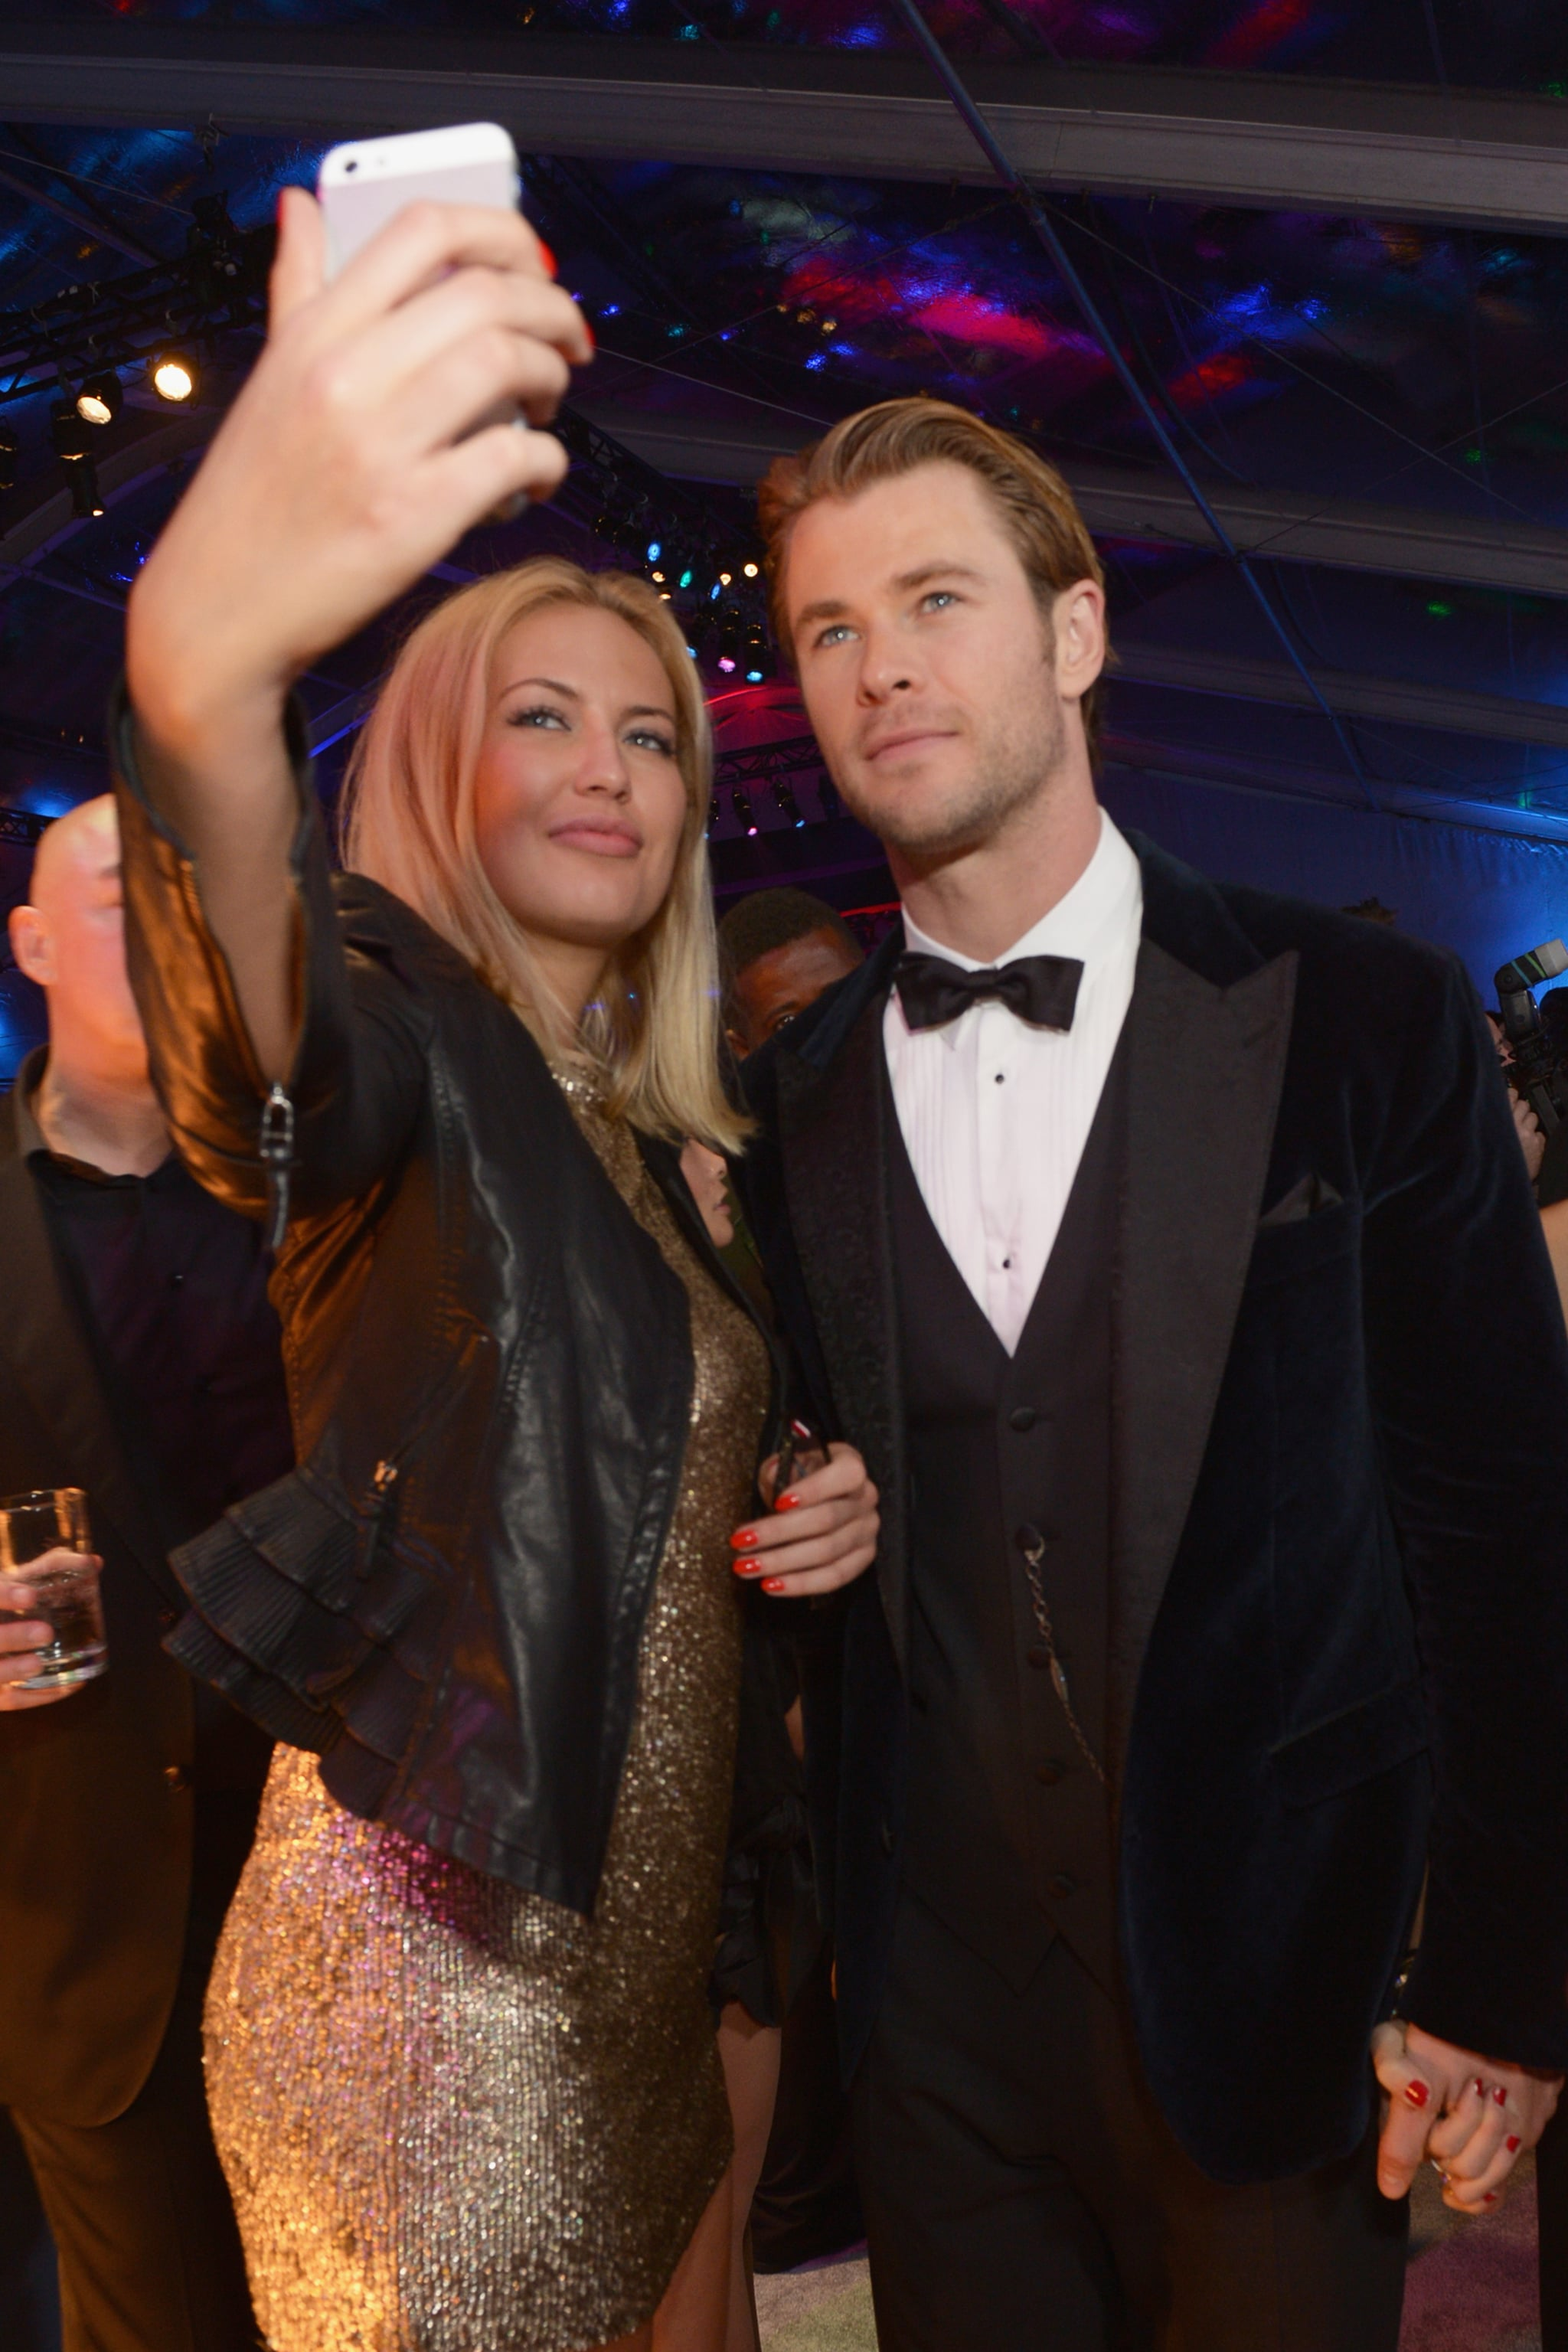 Chris Hemsworth was game for a fan selfie at the NBC afterparty.